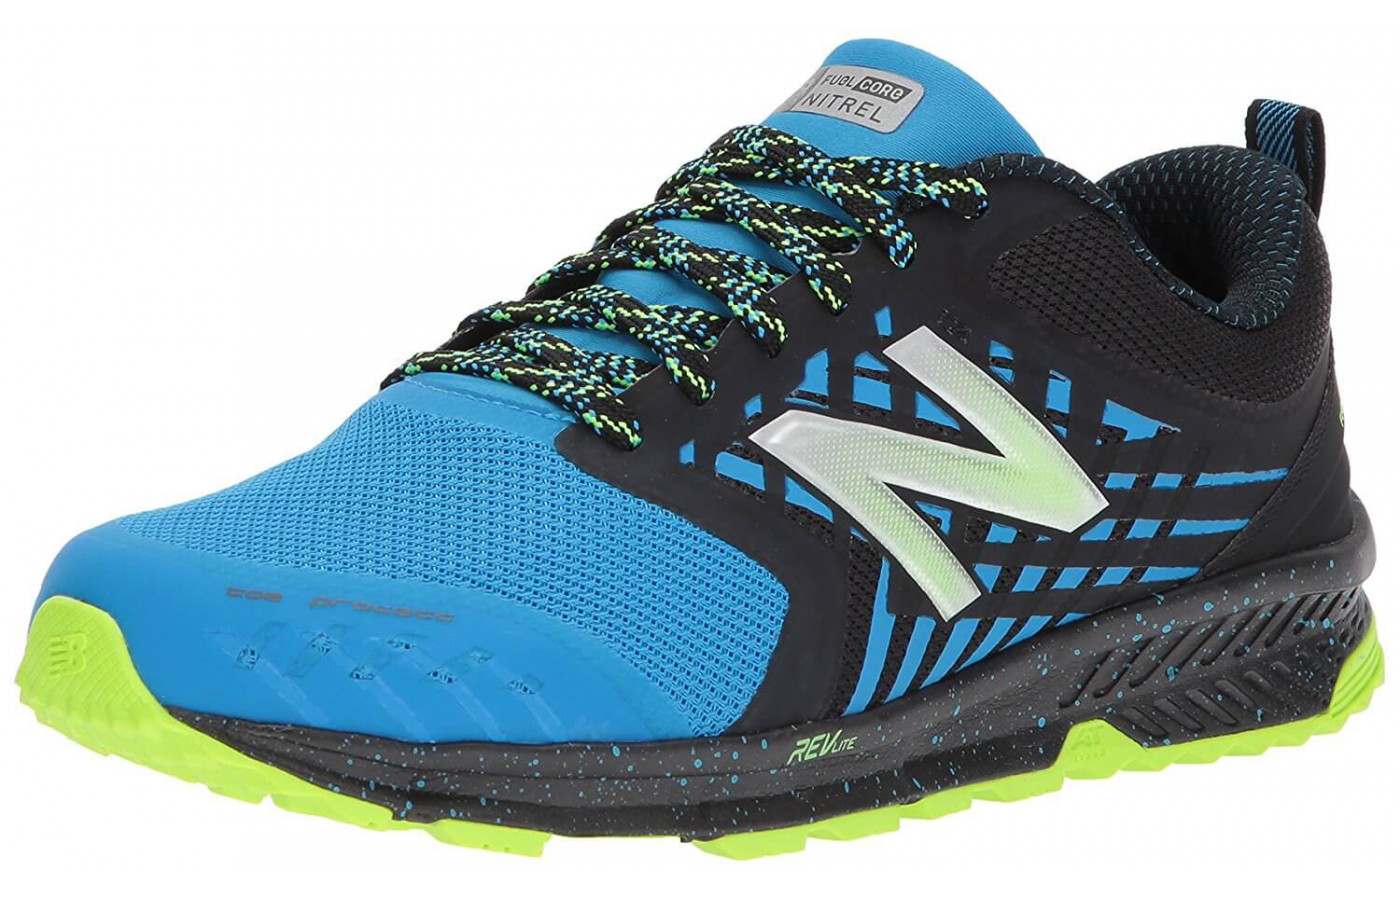 9b1d11d3ba2f6 New Balance Fuelcore Nitrel Fullyed - in July 2019?